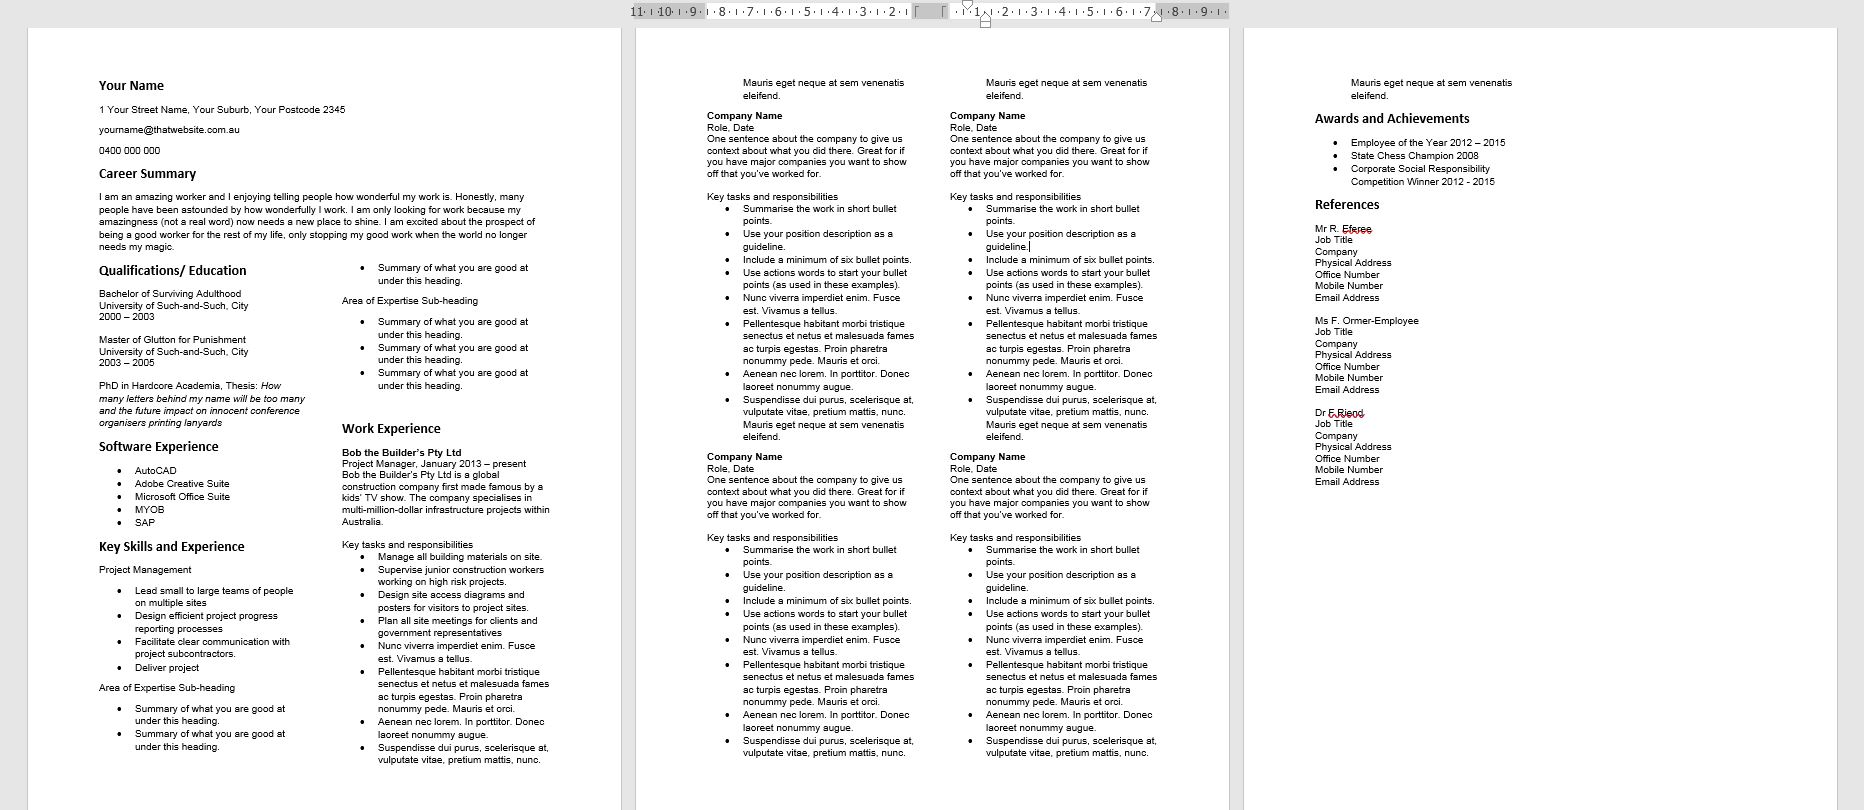 3. Add two columns to resume in Word